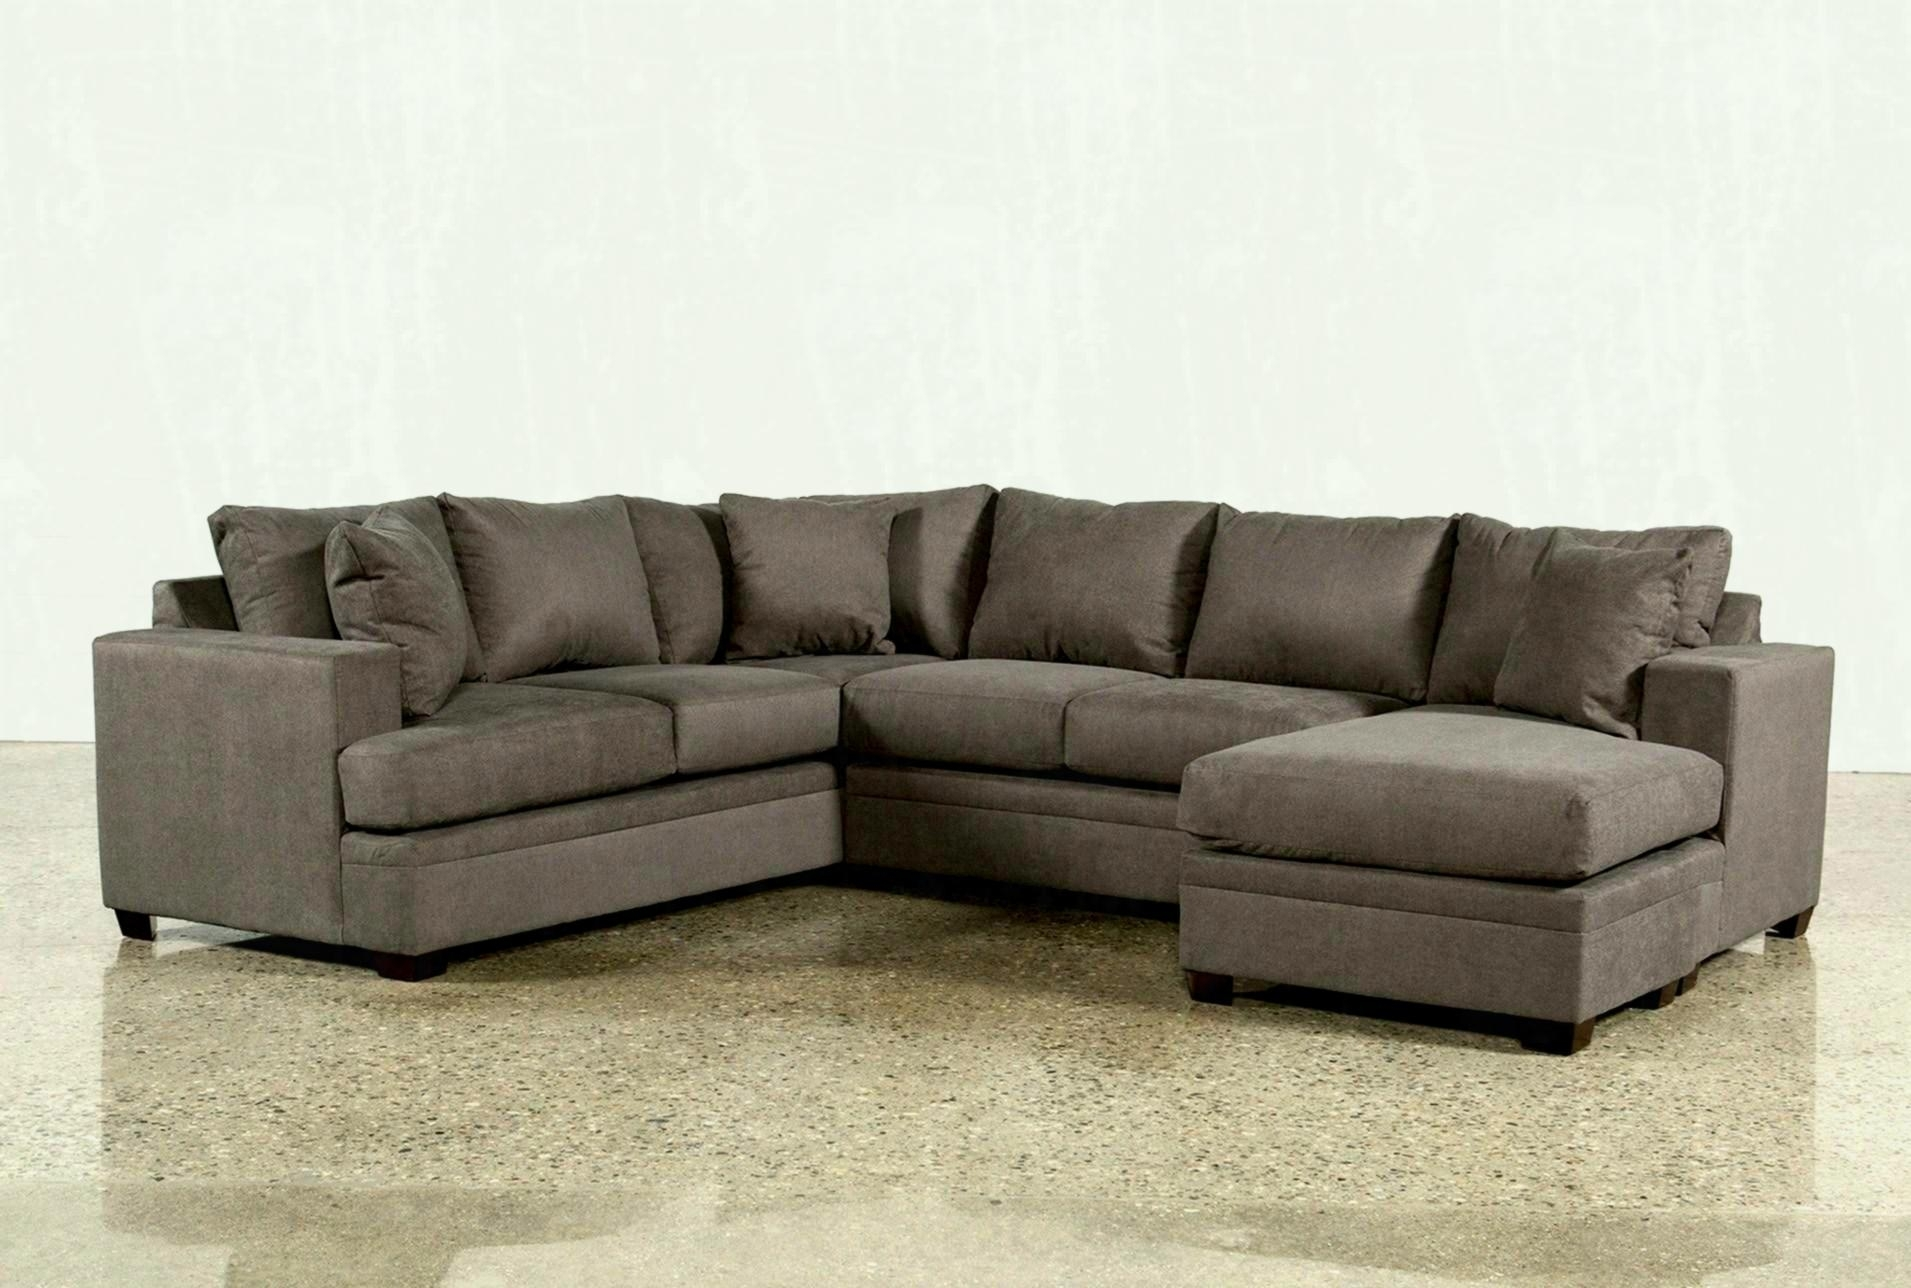 Added To Cart Kerri Piece Sectional W Raf Chaise Living Spaces with Lucy Grey 2 Piece Sectionals With Raf Chaise (Image 1 of 30)